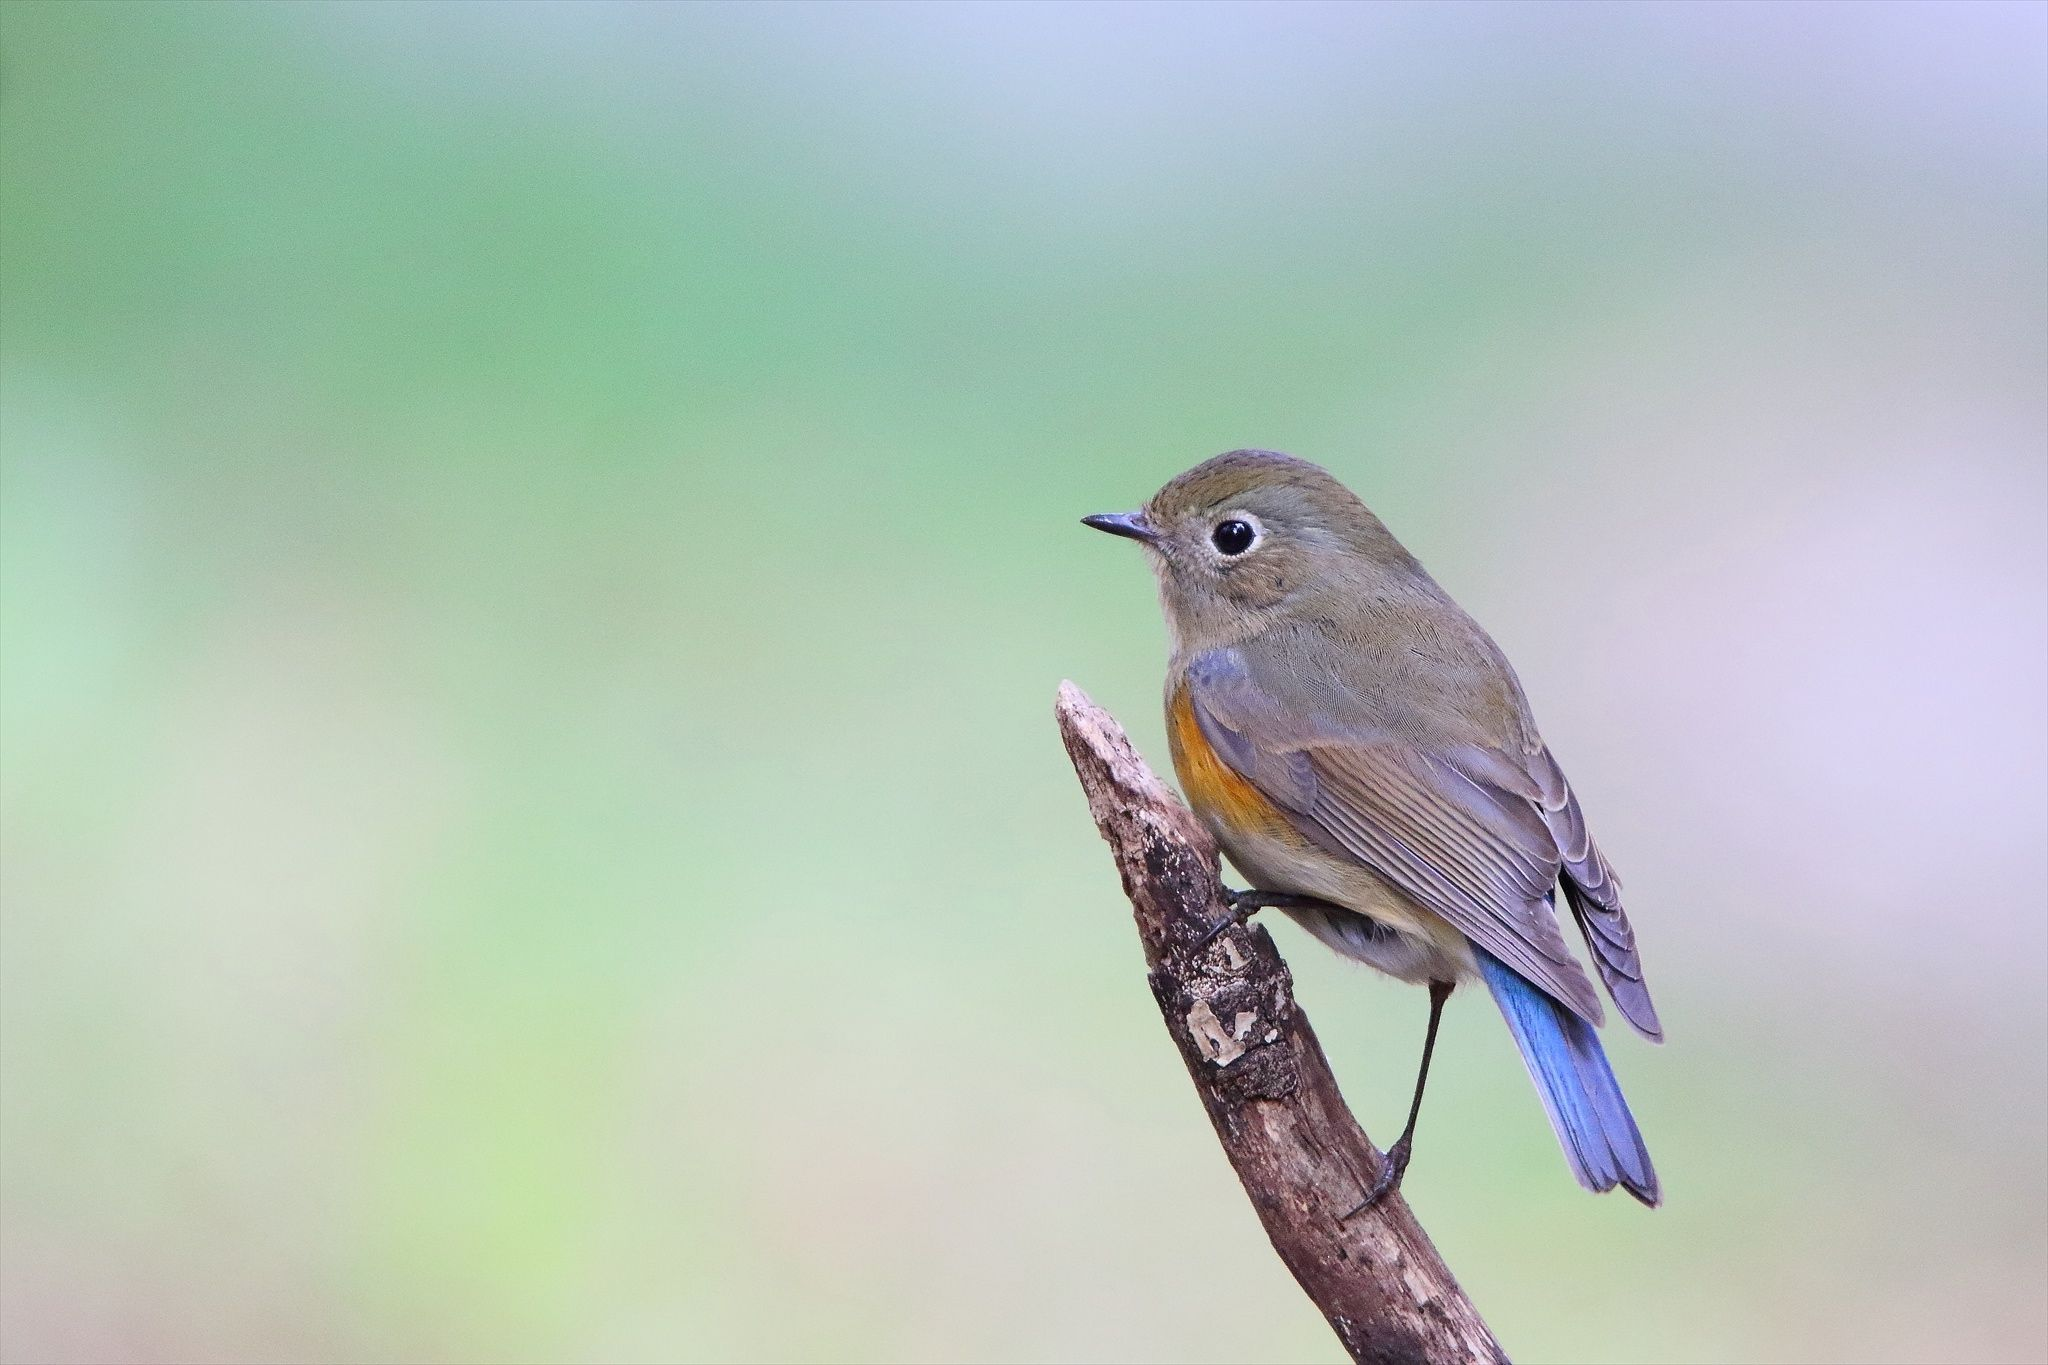 Red-flanked bluetail - Red-flanked bluetail,male young bird.